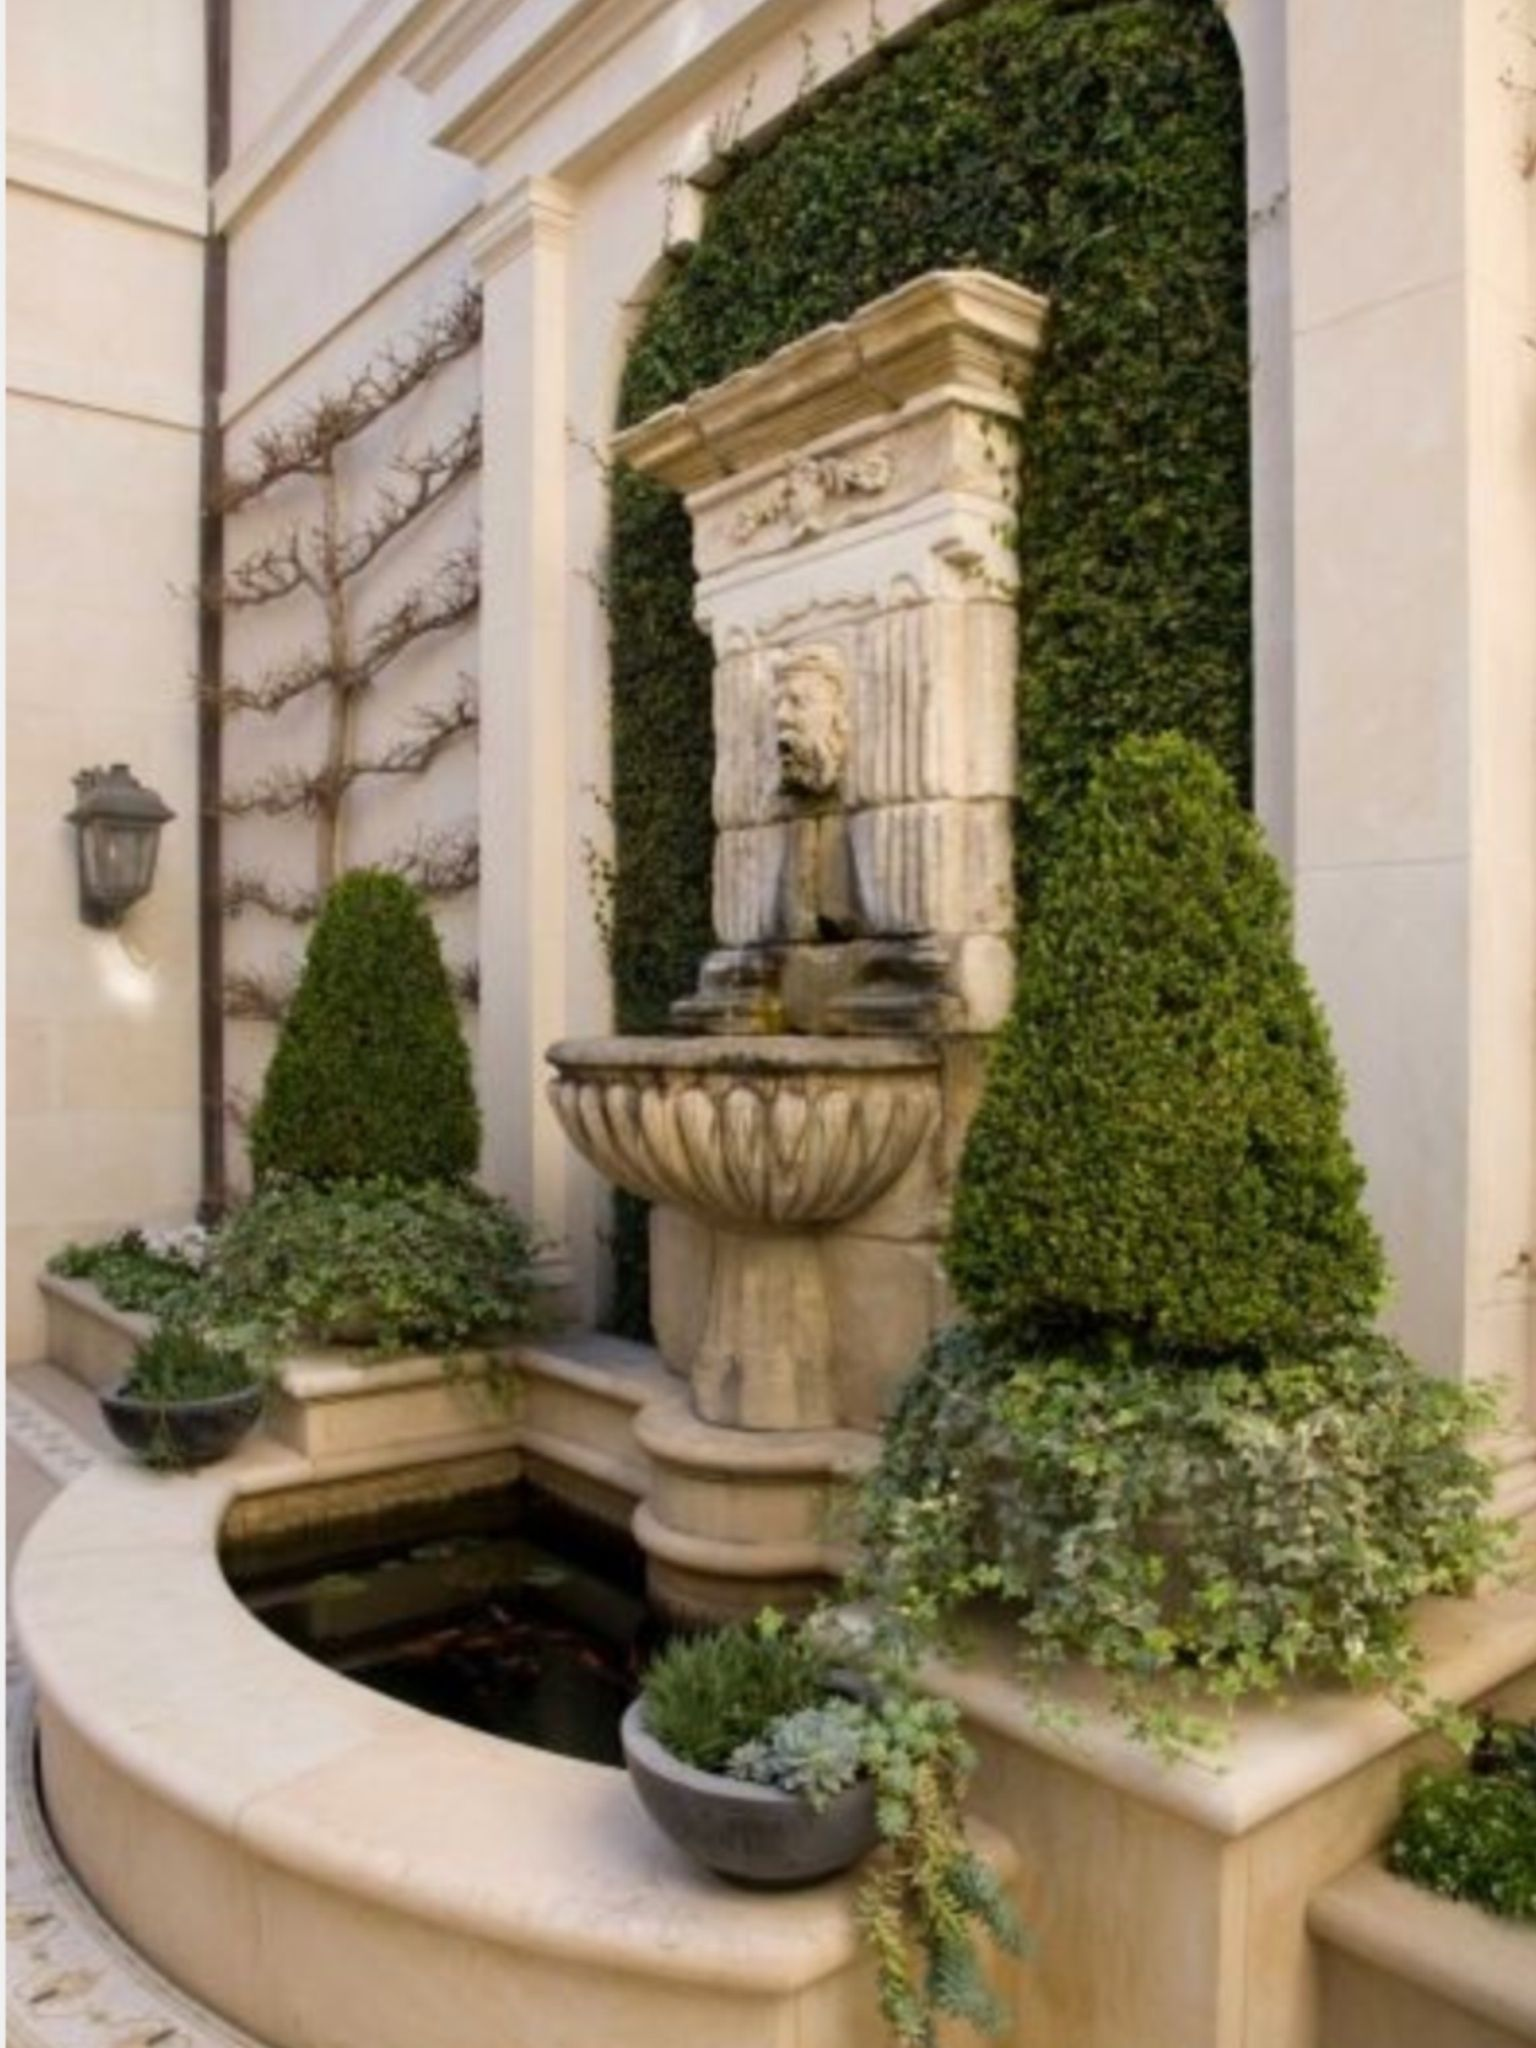 Wall Fountain In Courtyard; Espalier And Pair Of Topiary